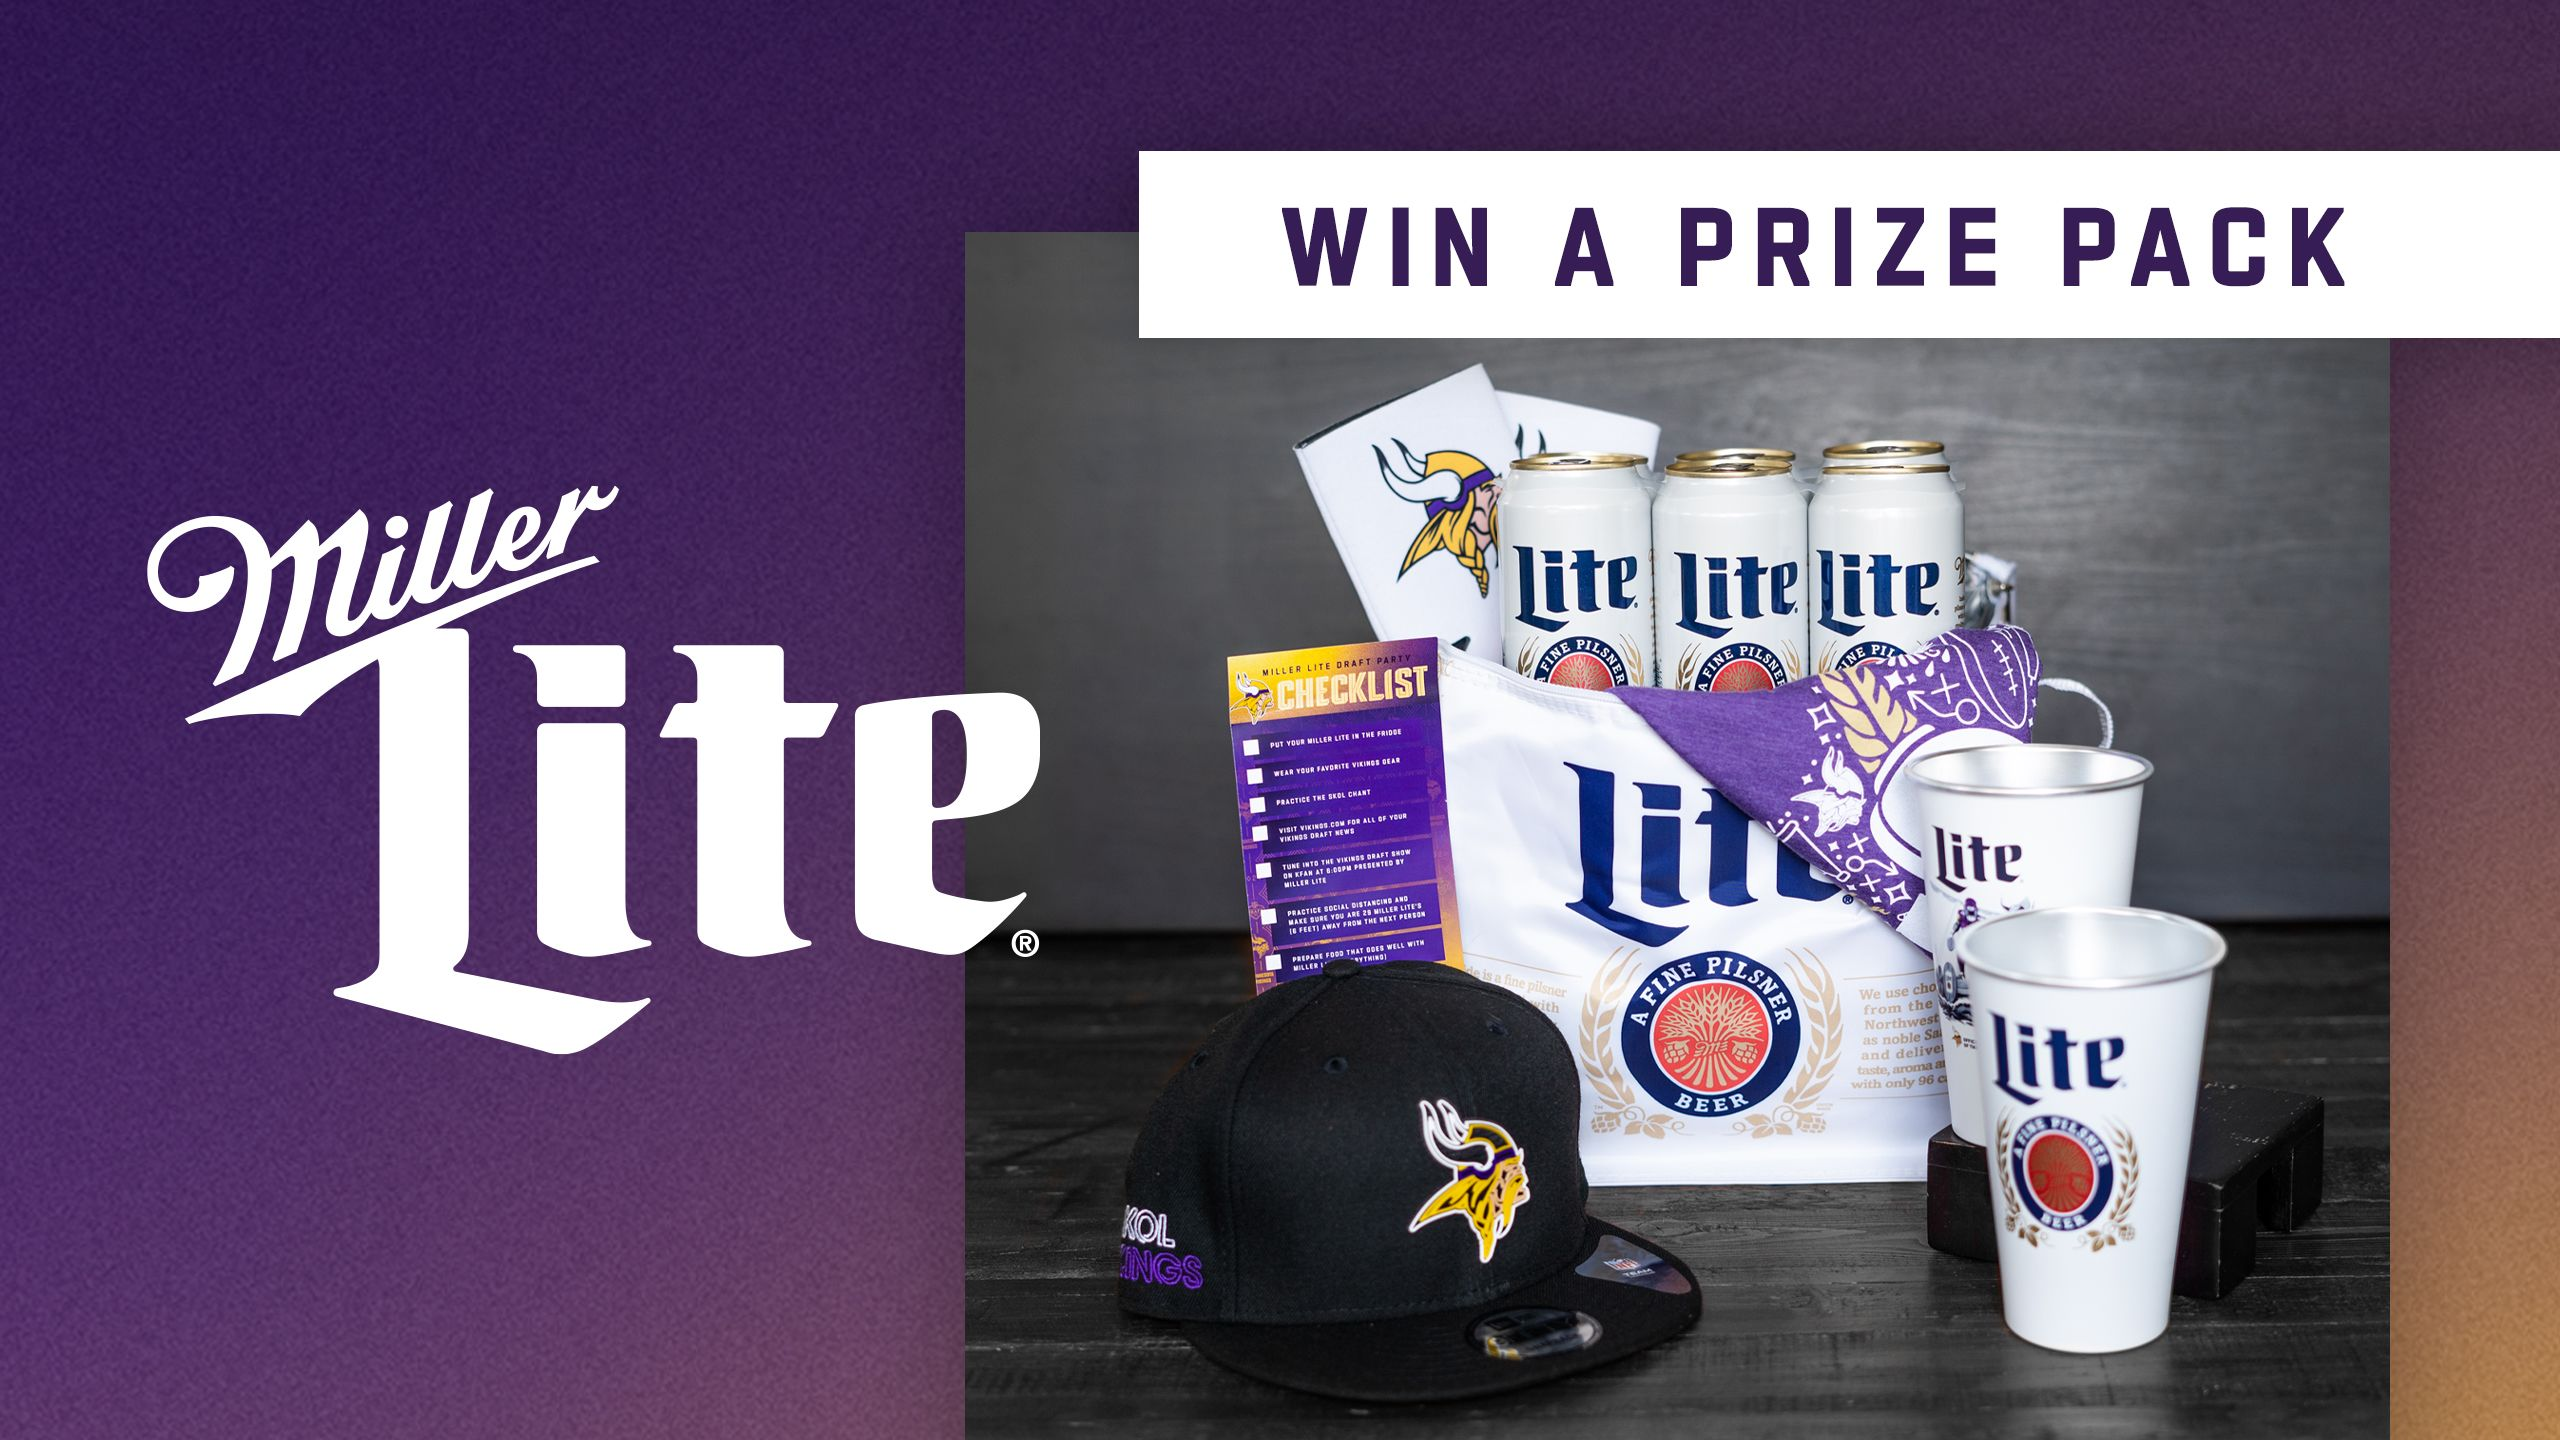 Win a Draft Prize Pack